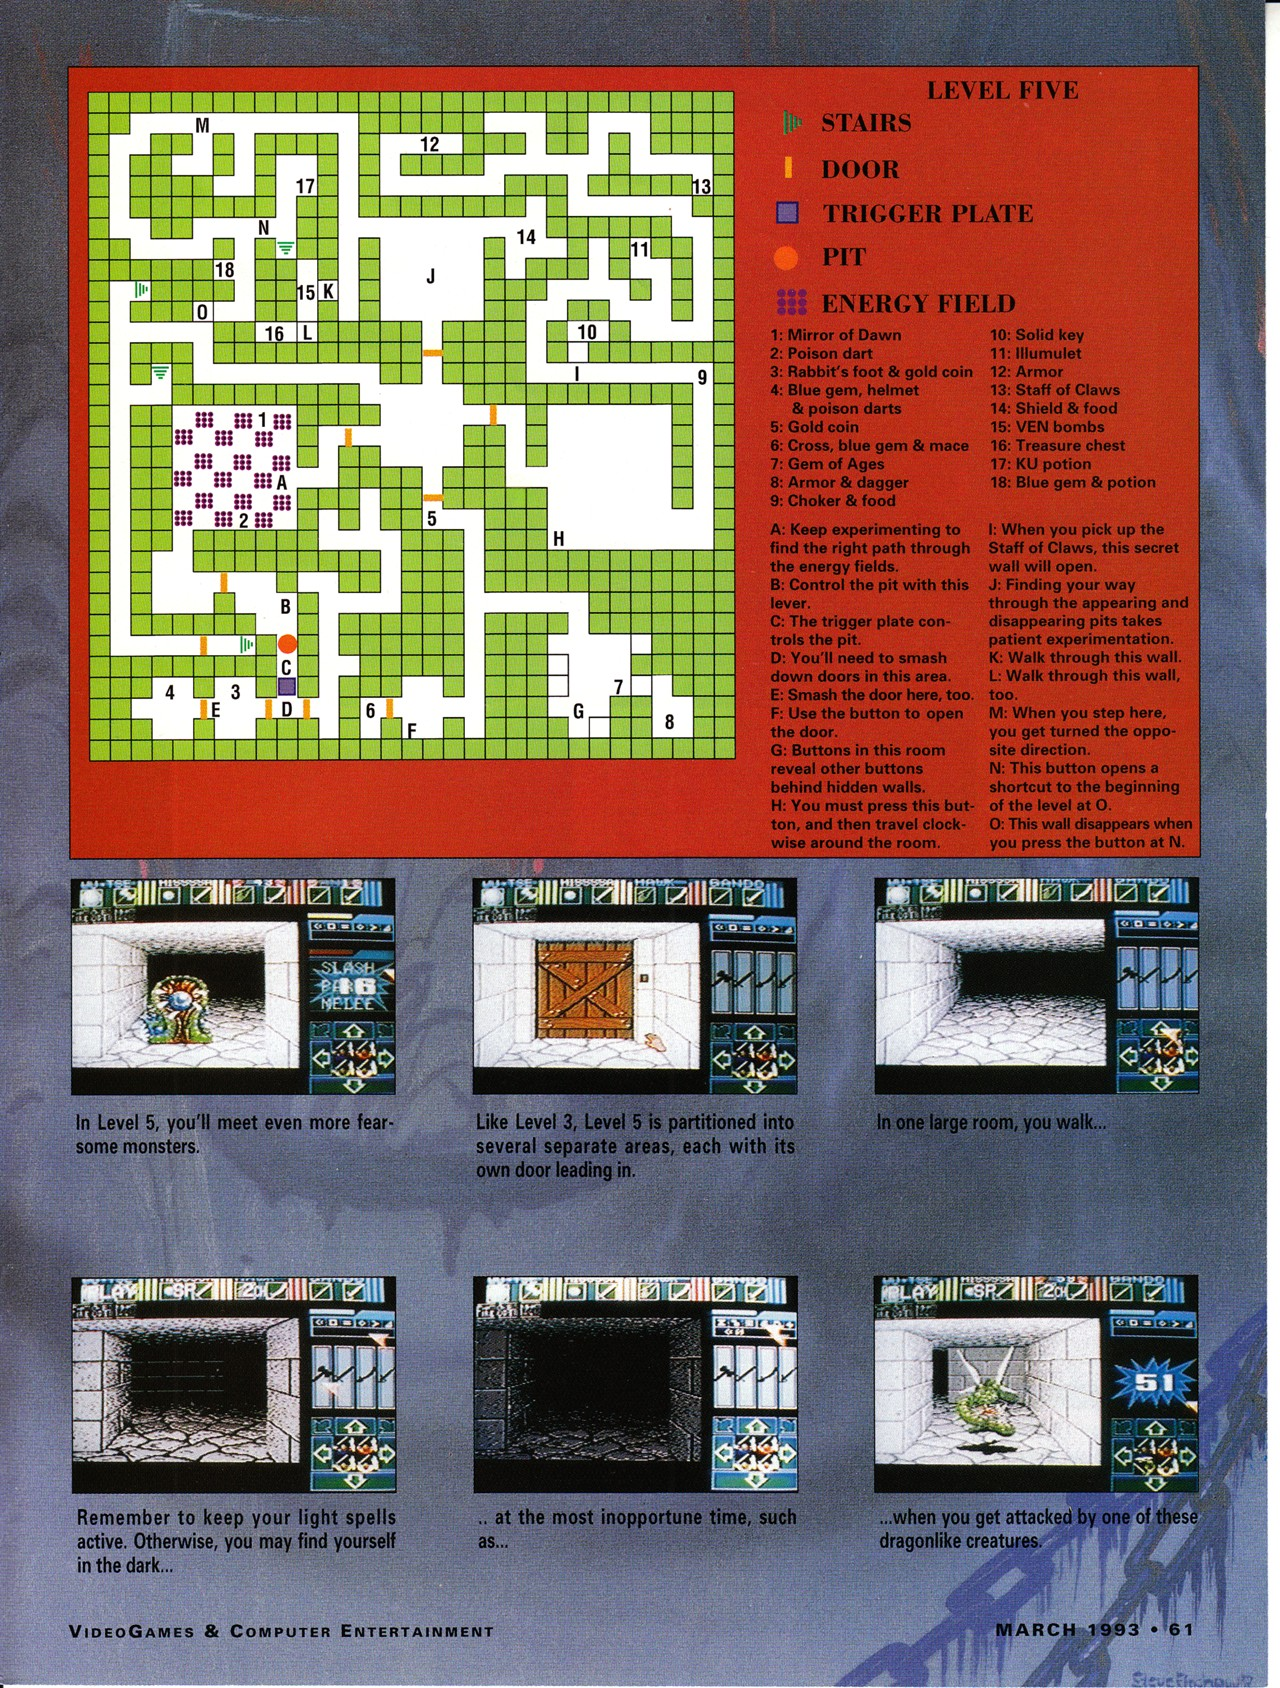 Dungeon Master for Super NES Guide published in American magazine 'VideoGames And Computer Entertainment', Issue #50 March 1993, Page 61